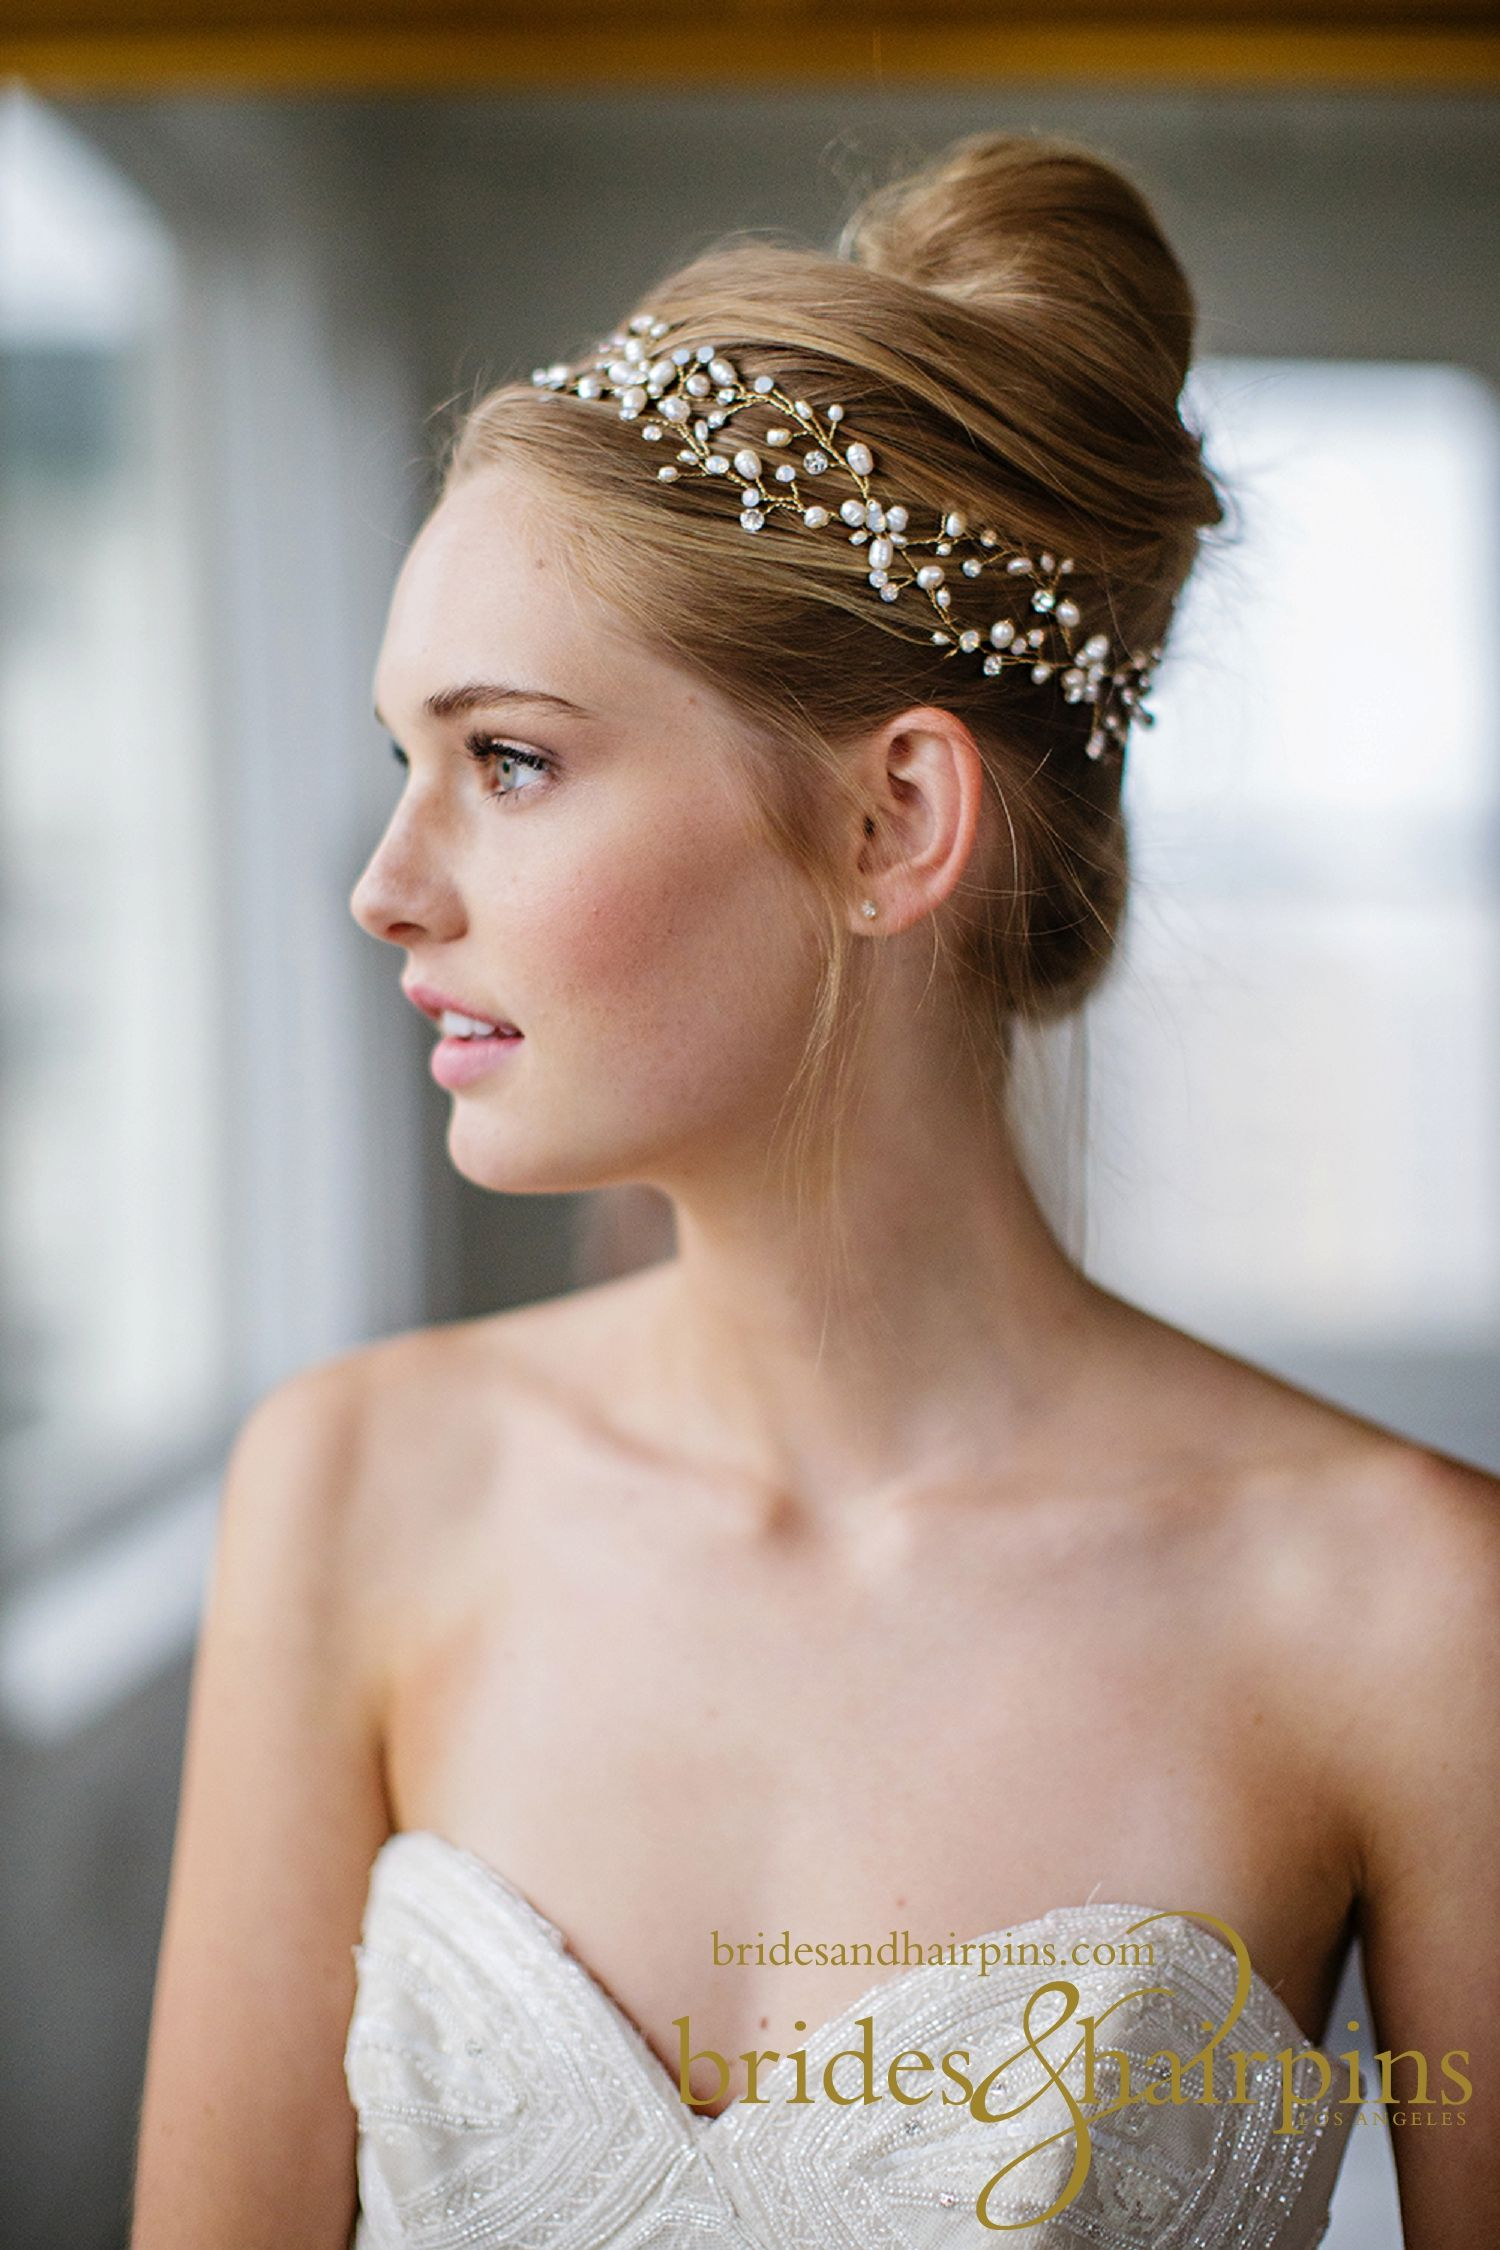 Brides hairpins bridal hair accessories and veils worldwide brides hairpins bridal hair accessories and veils worldwide losangeles bridal hair accessories junglespirit Image collections